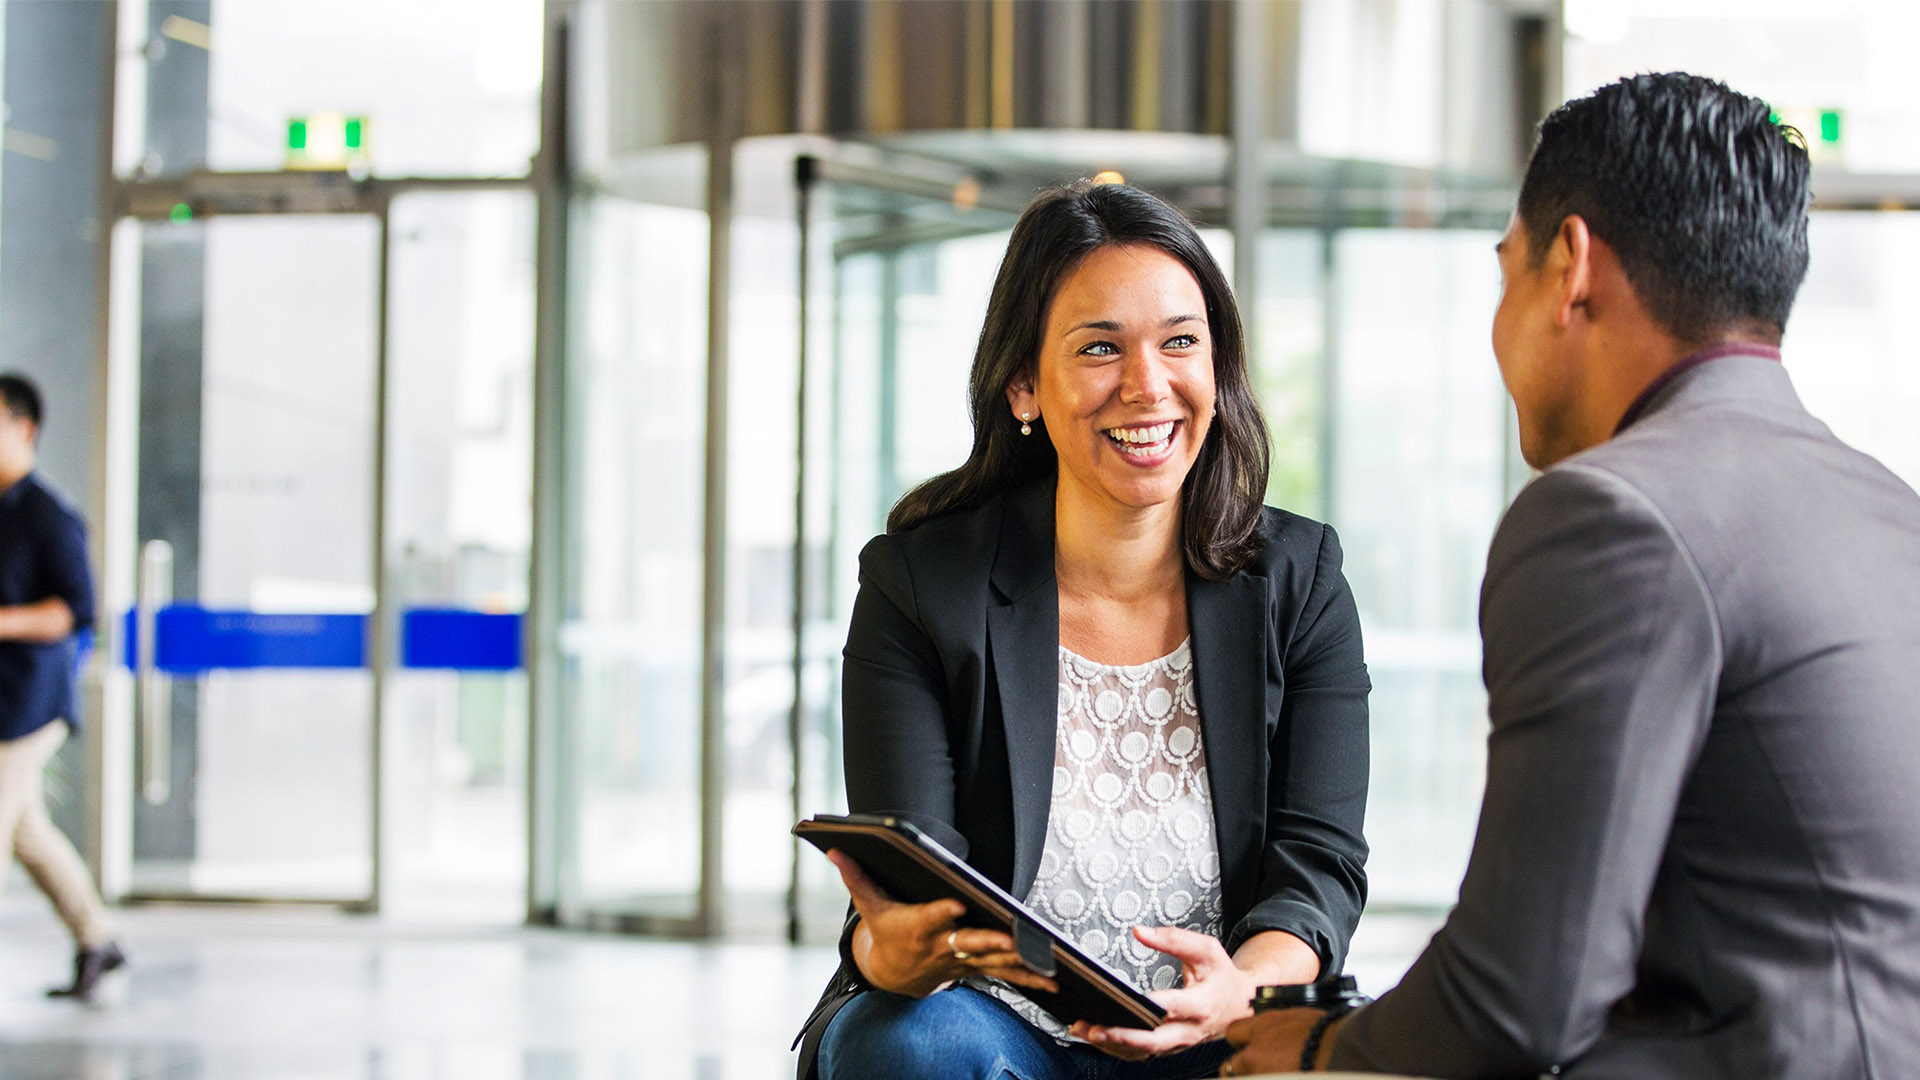 A business woman and man talking in a building lobby.